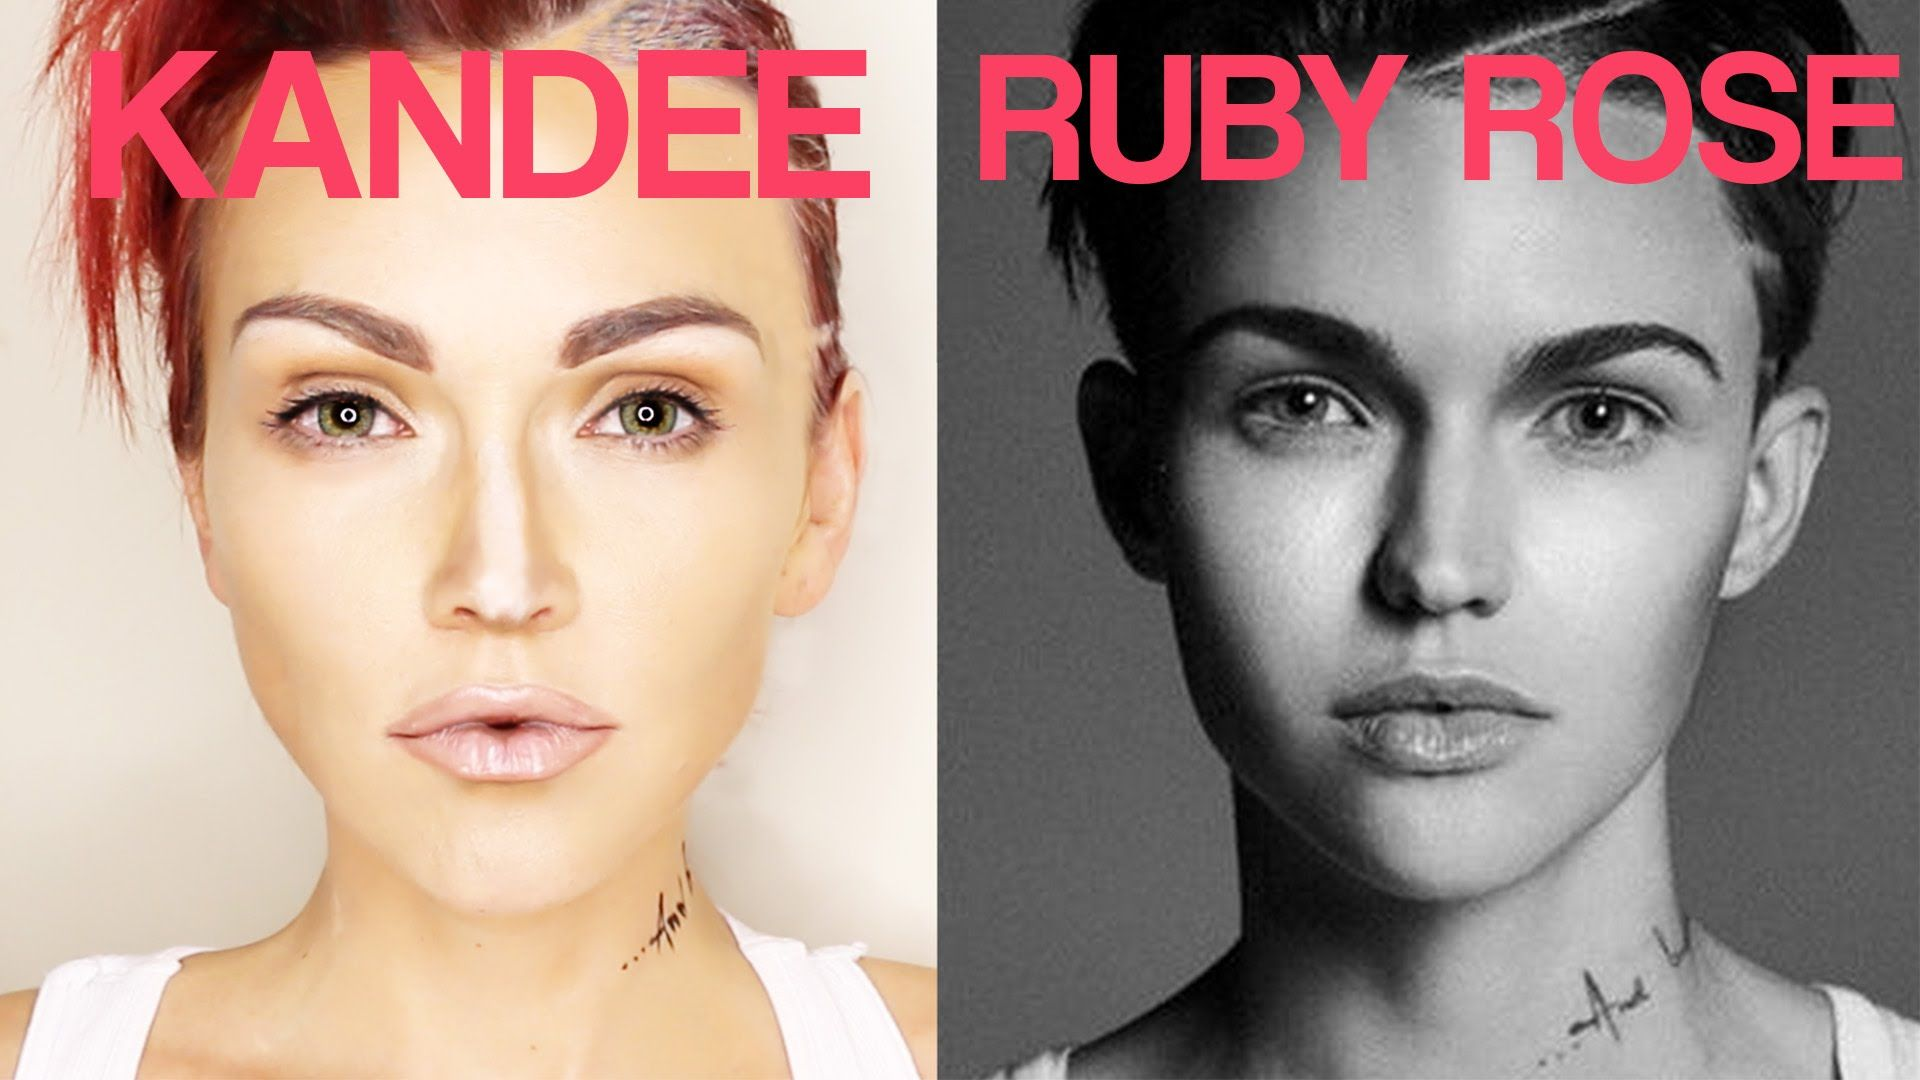 Ruby rose transformation kandee johnson fashion and beauty makeup ideas baditri Gallery